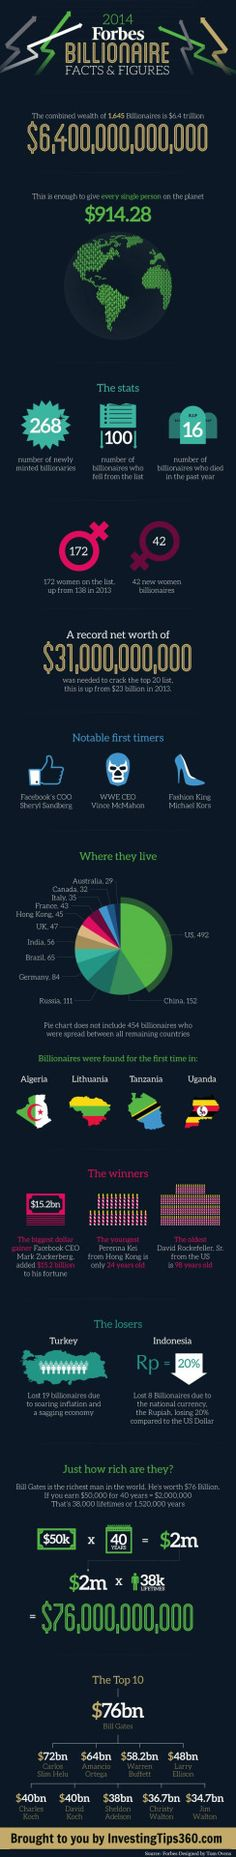 infographic: the worlds billionaires http://ift.tt/1T3xJSJ